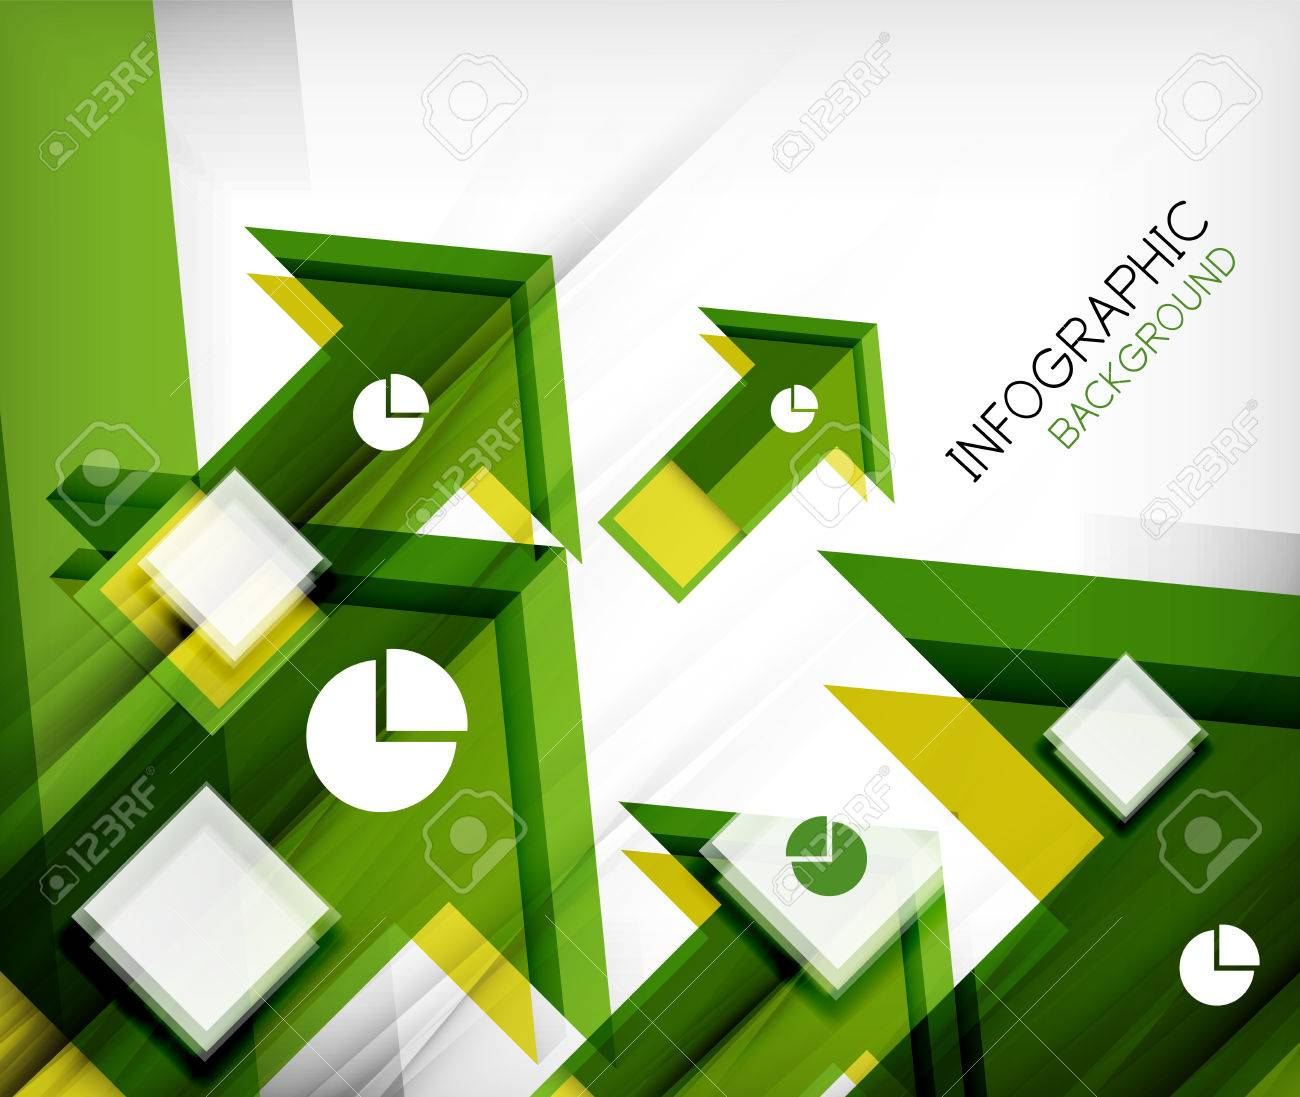 Infographic abstract background - arrow geometric shape. For business presentation | technology | web design Stock Vector - 26210058